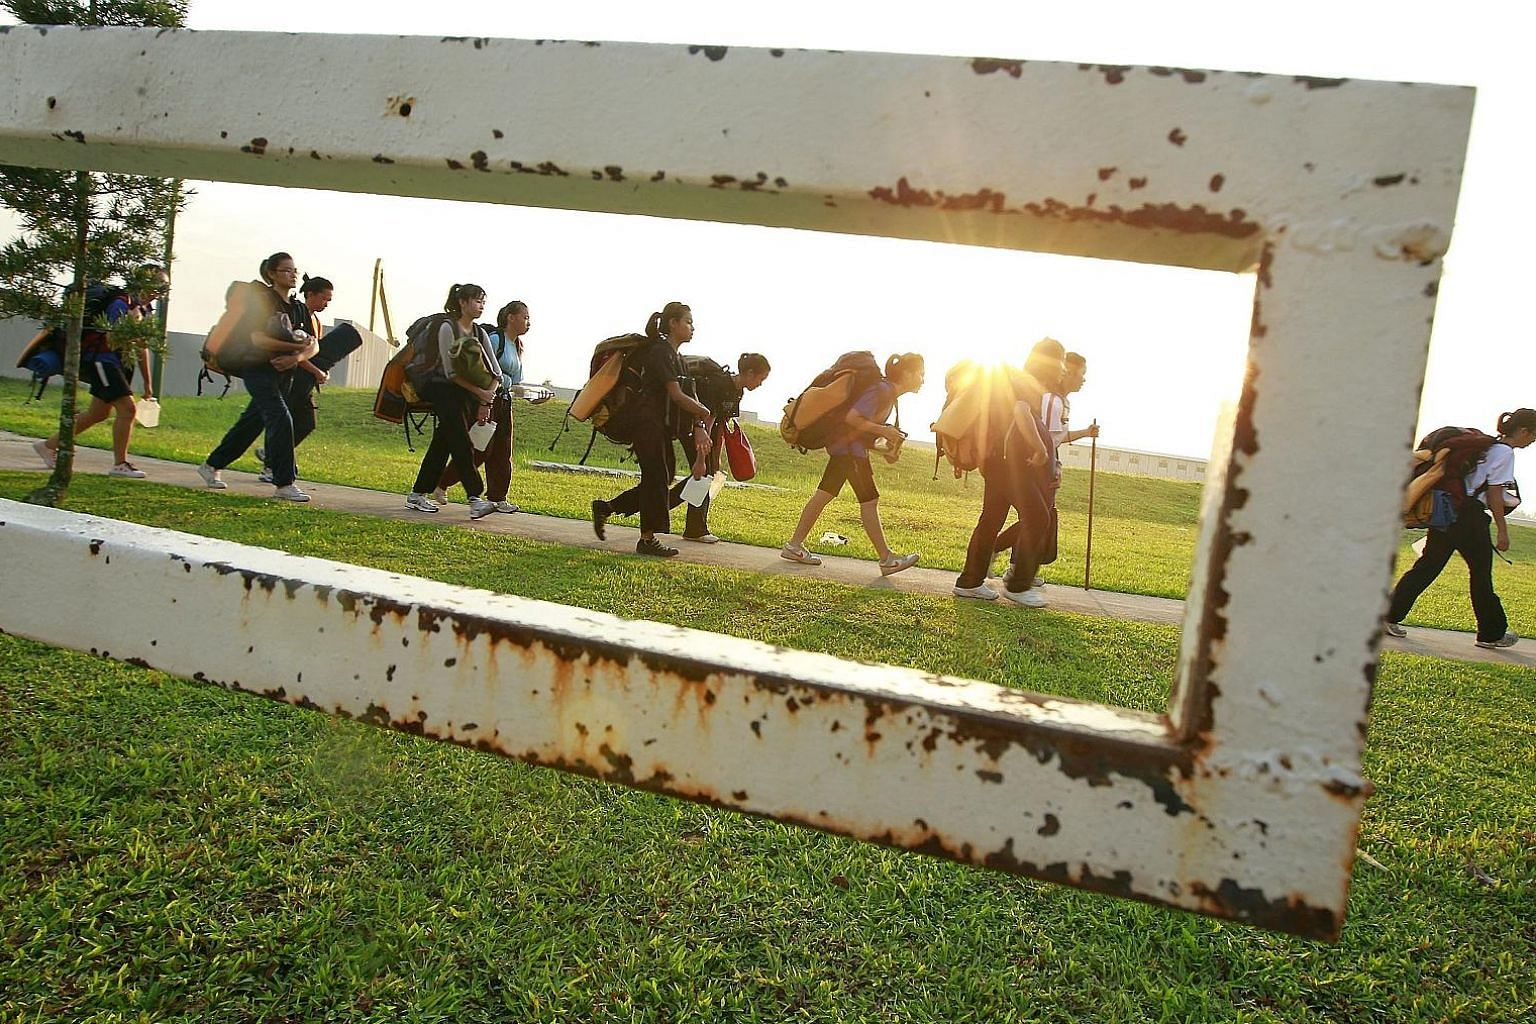 Secondary 3 students on an urban land expedition in Punggol in 2011. Participants picked up leadership and navigational skills as they navigated through housing estates and the Lorong Halus Wetland.